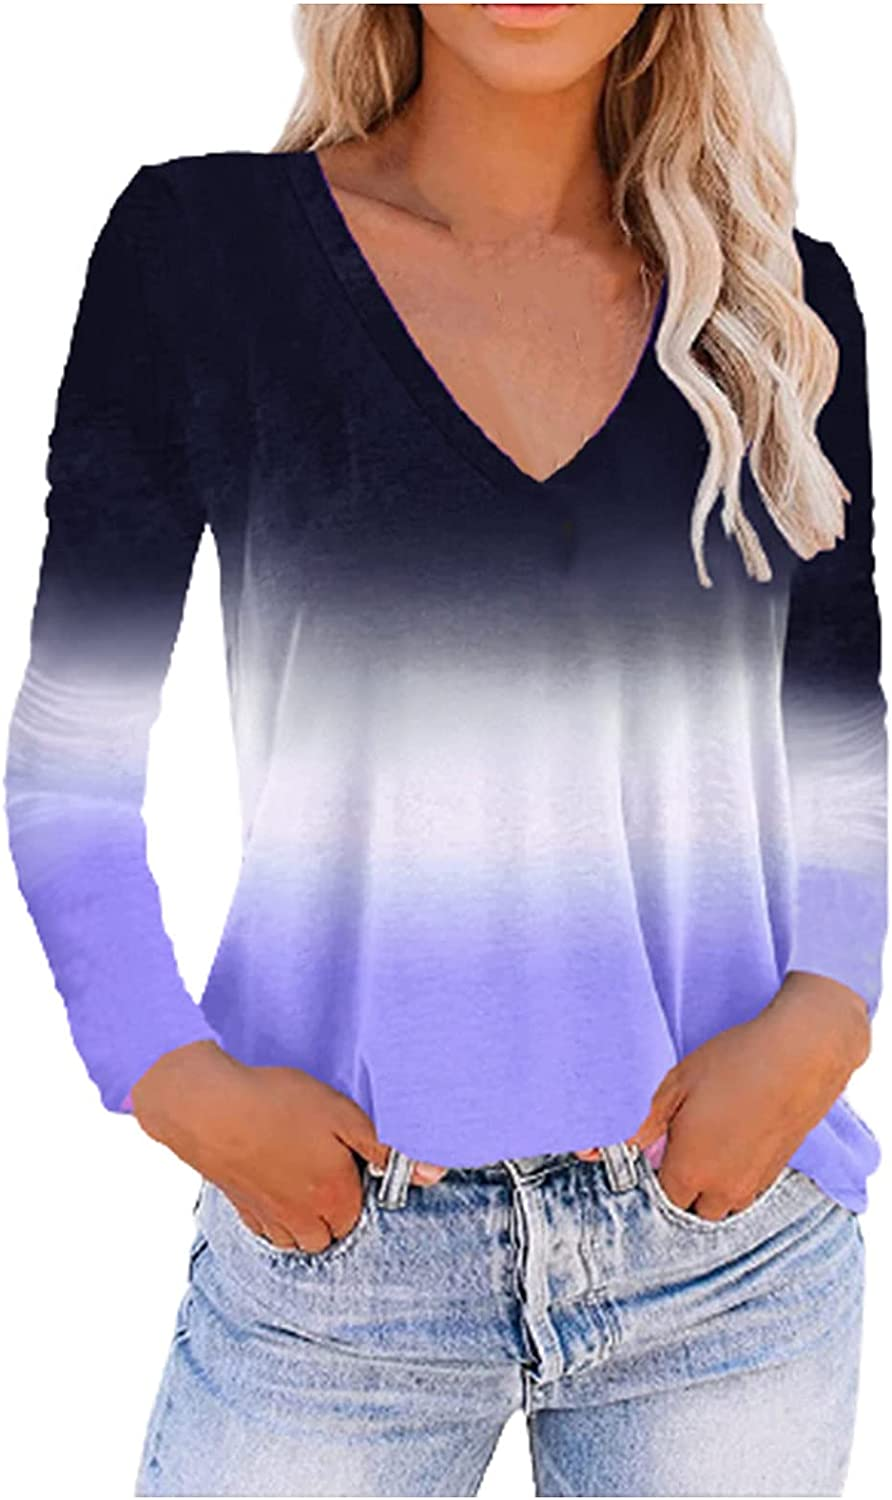 Women V Neck Flame Tie Dye Long Sleeve Tshirt Tops Trendy Solid Color Loose Fit Blouses Plus Size Workout Tunic Tees